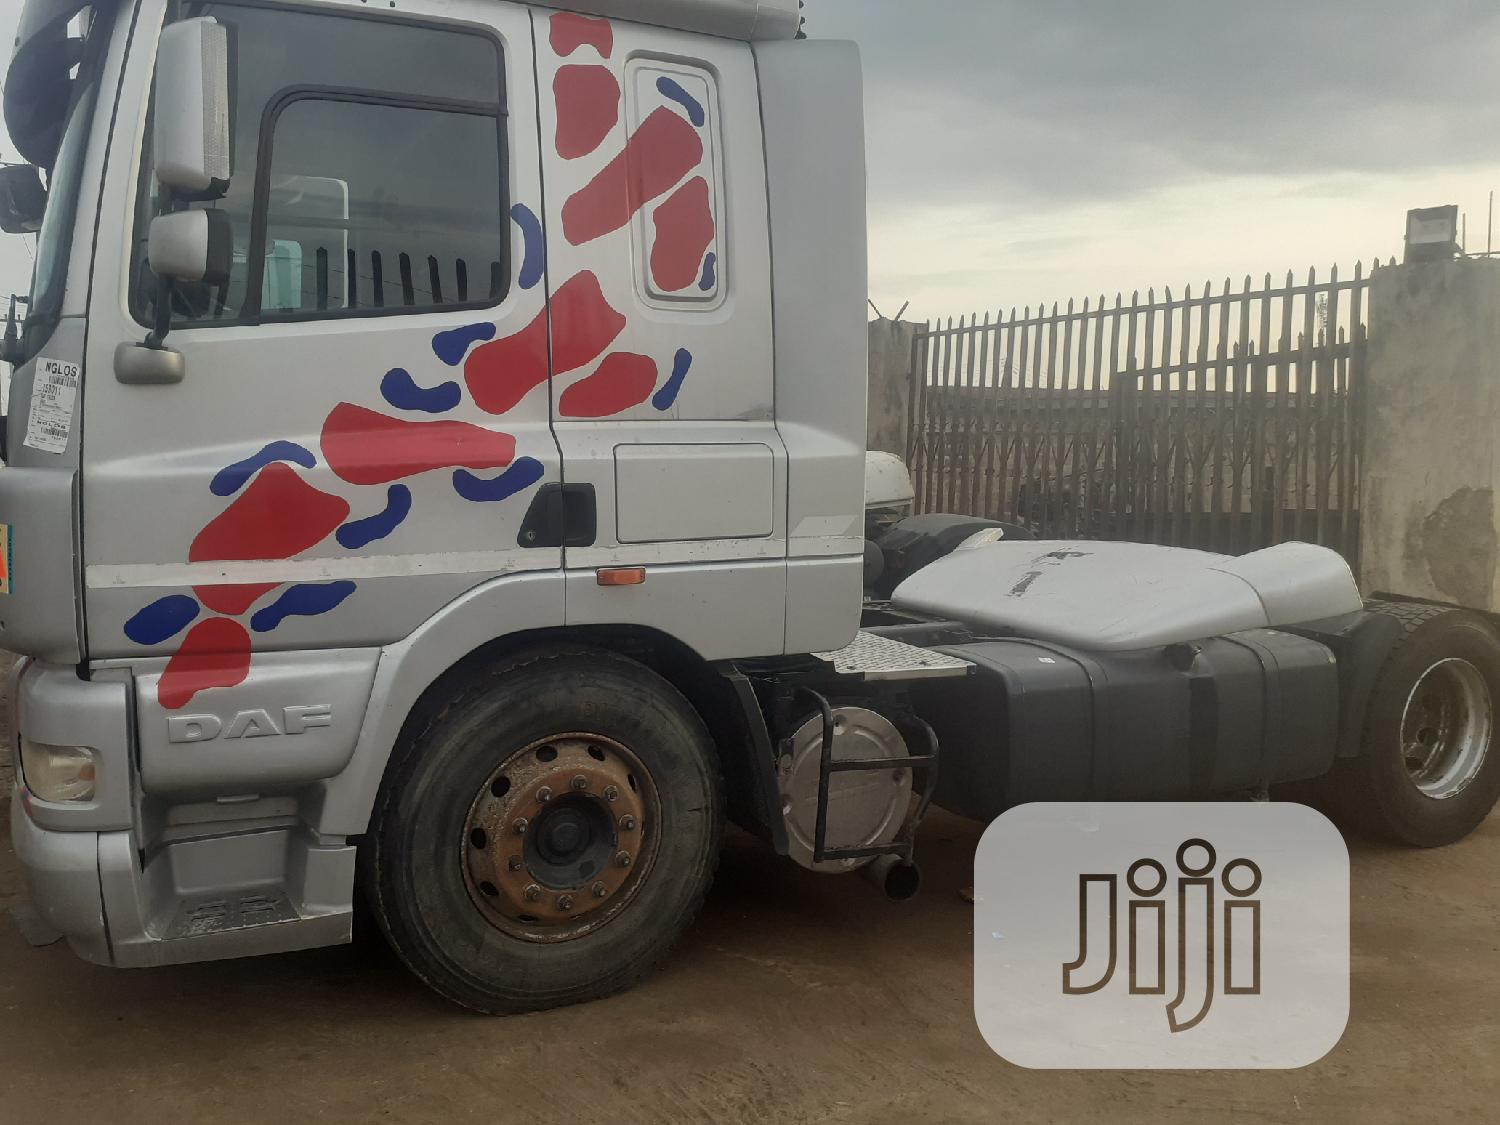 DAF Cf Tokunbo Tractor Unit | Heavy Equipment for sale in Ibadan, Oyo State, Nigeria